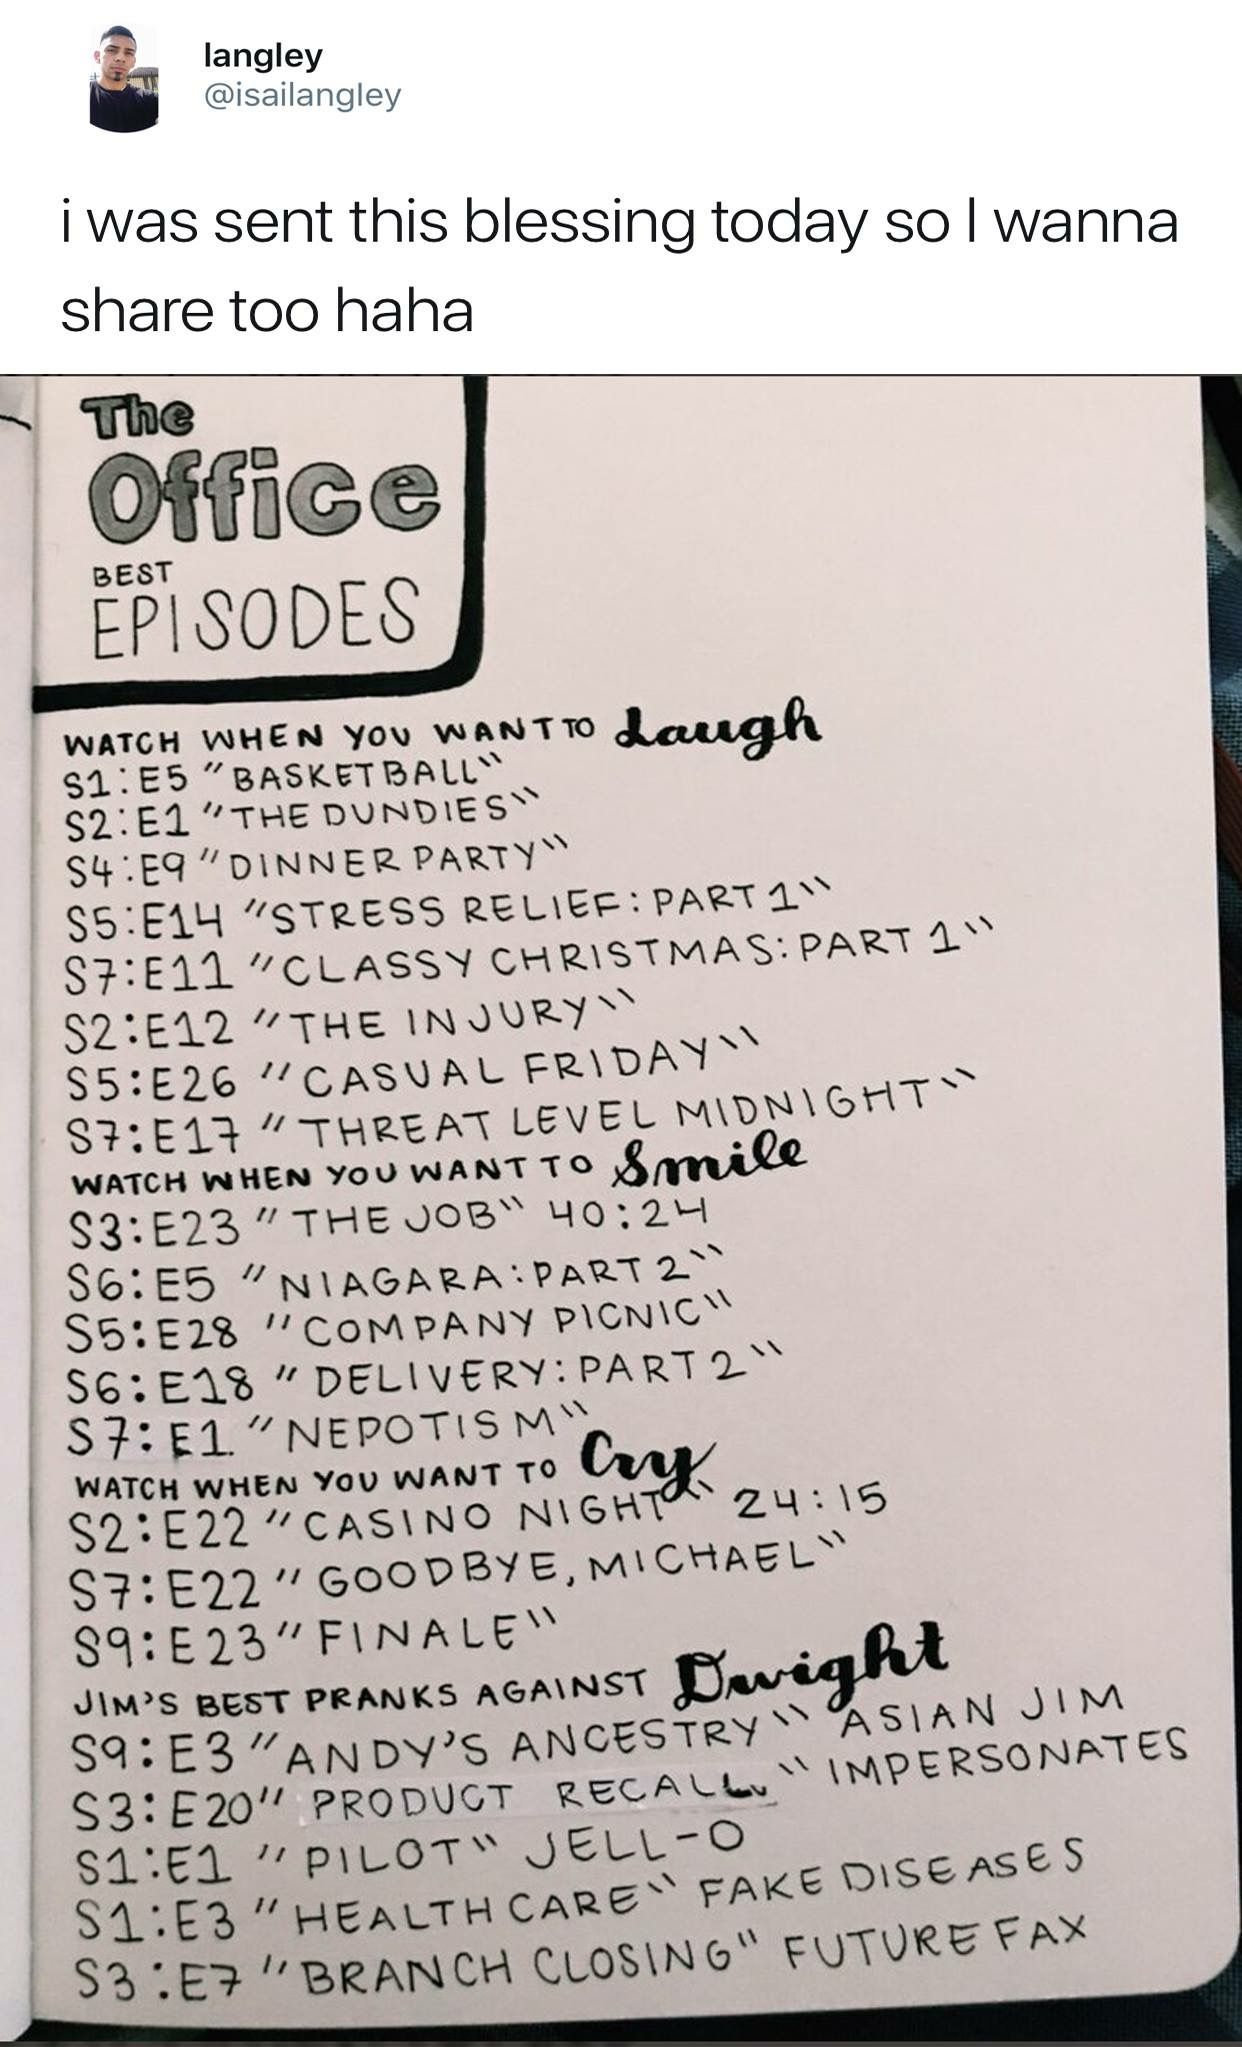 The Office helpful episode index   the office <3   Office memes, The